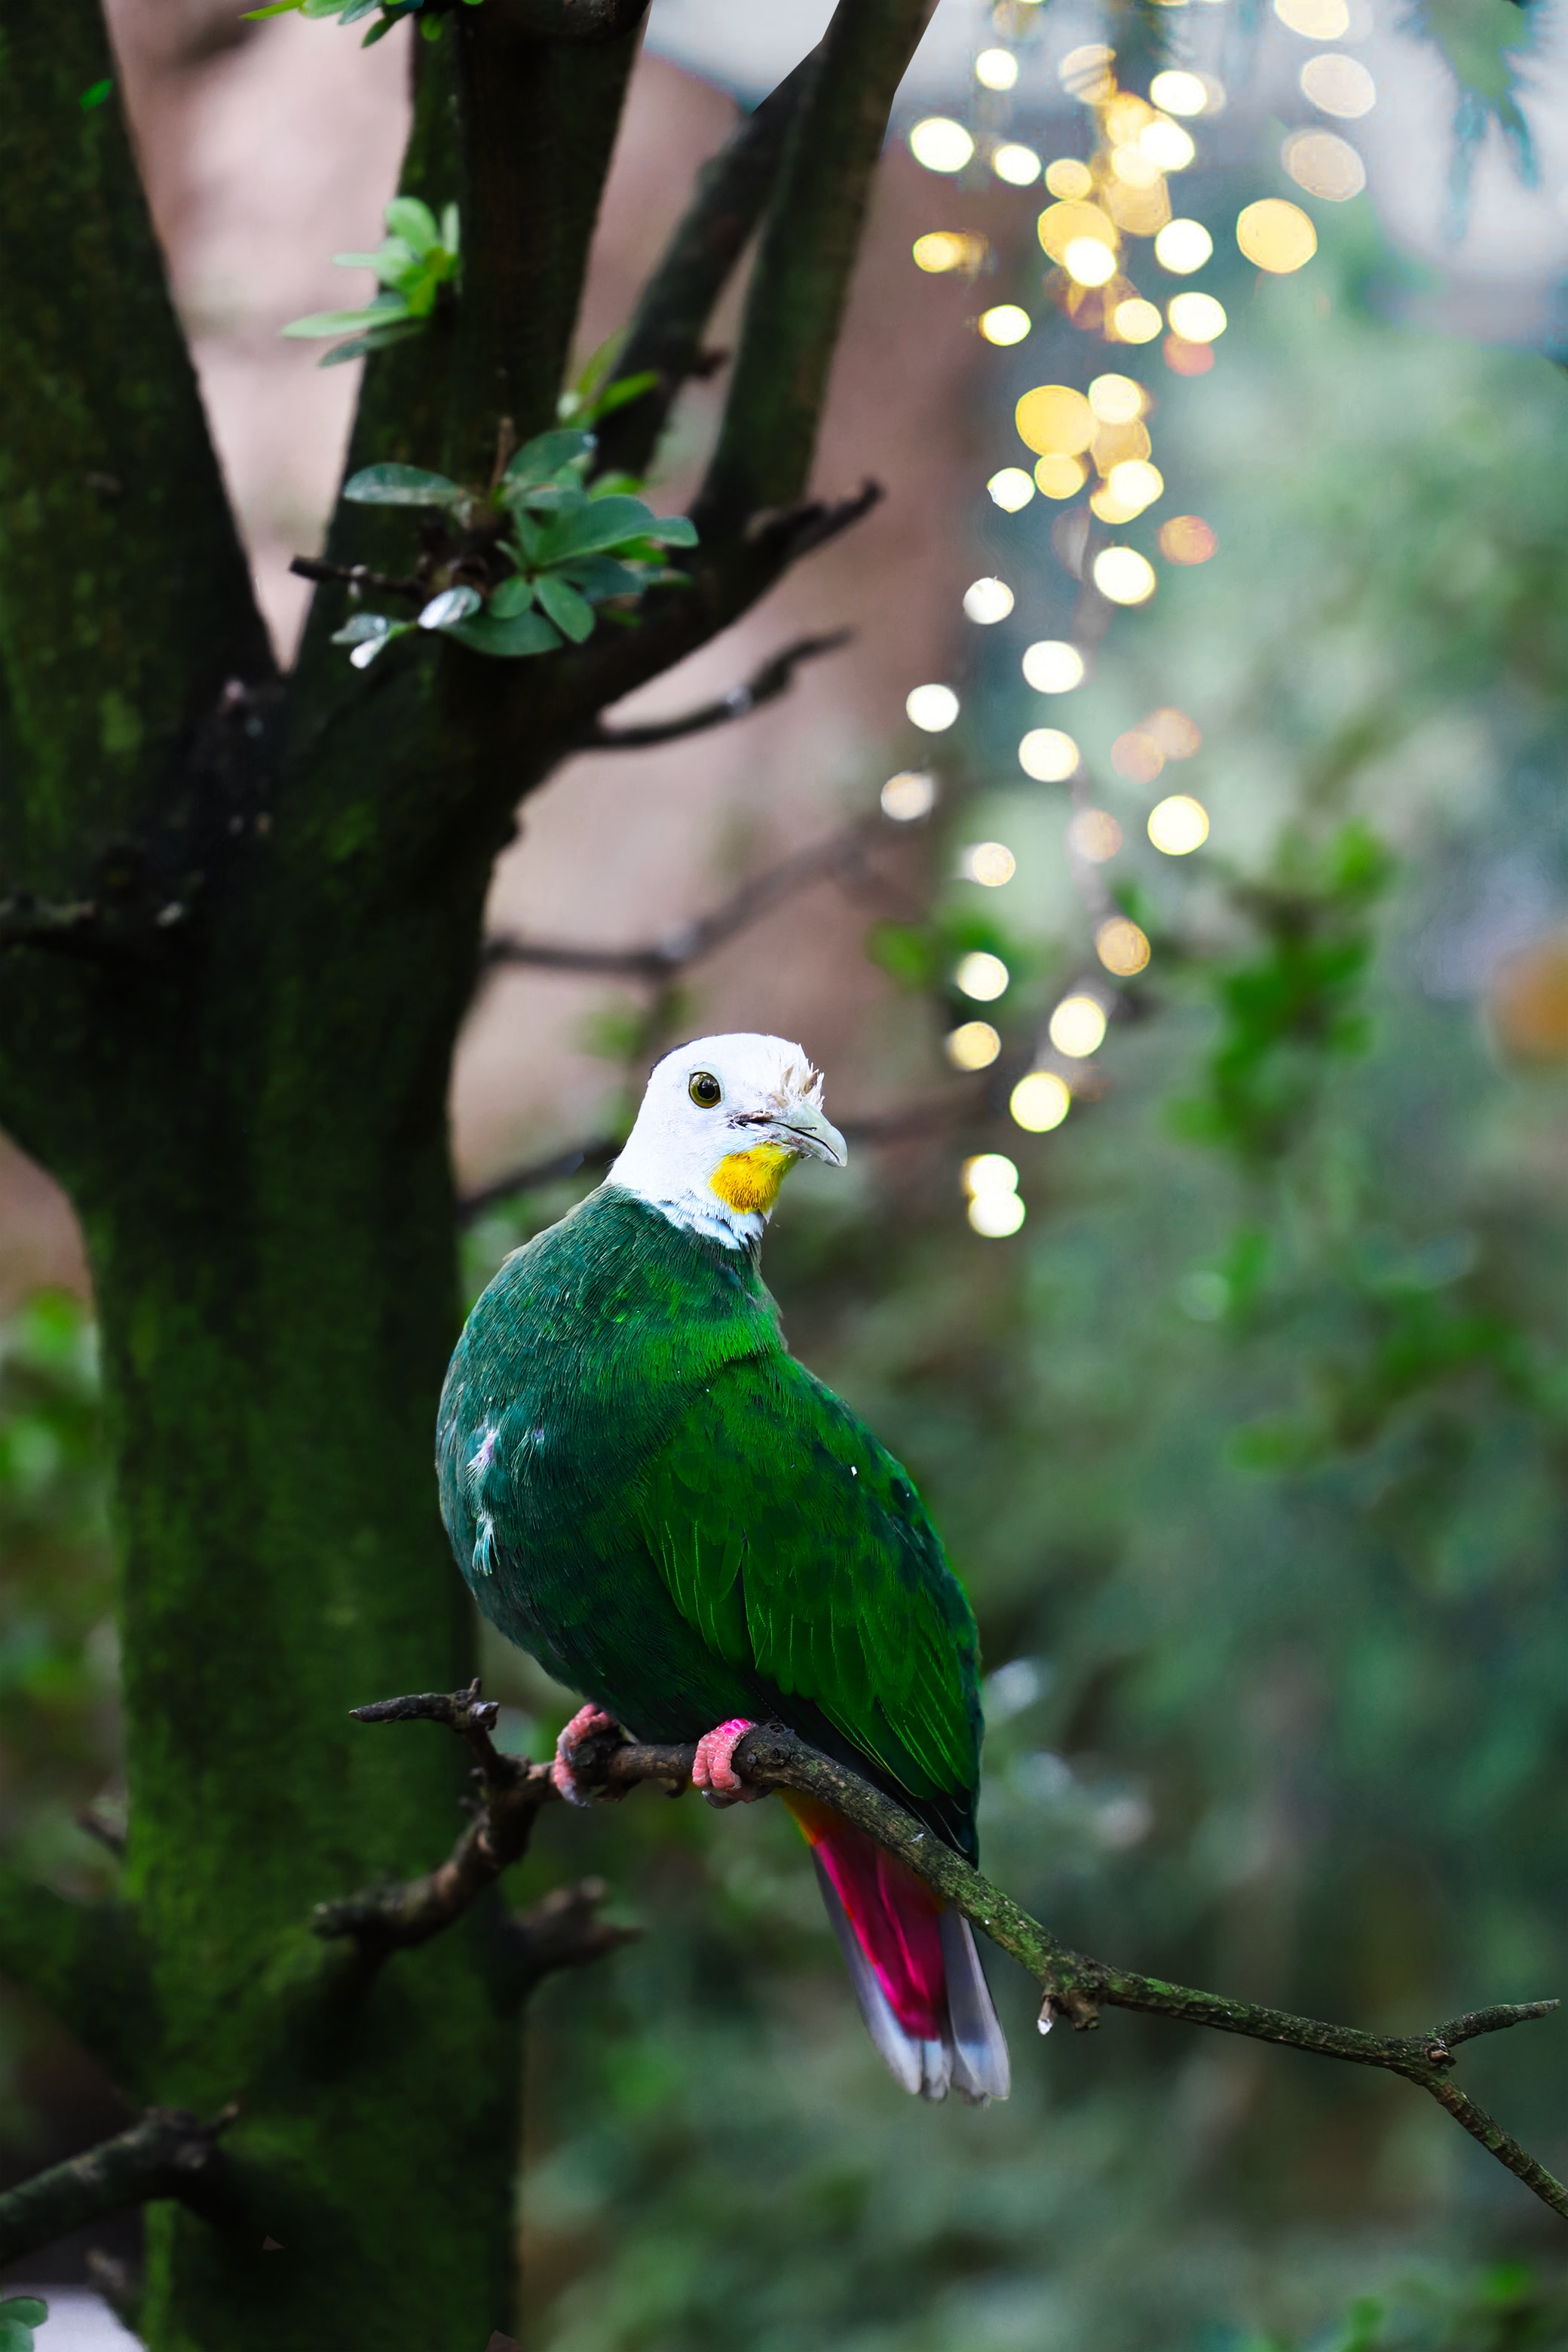 green and white bird on tree branch